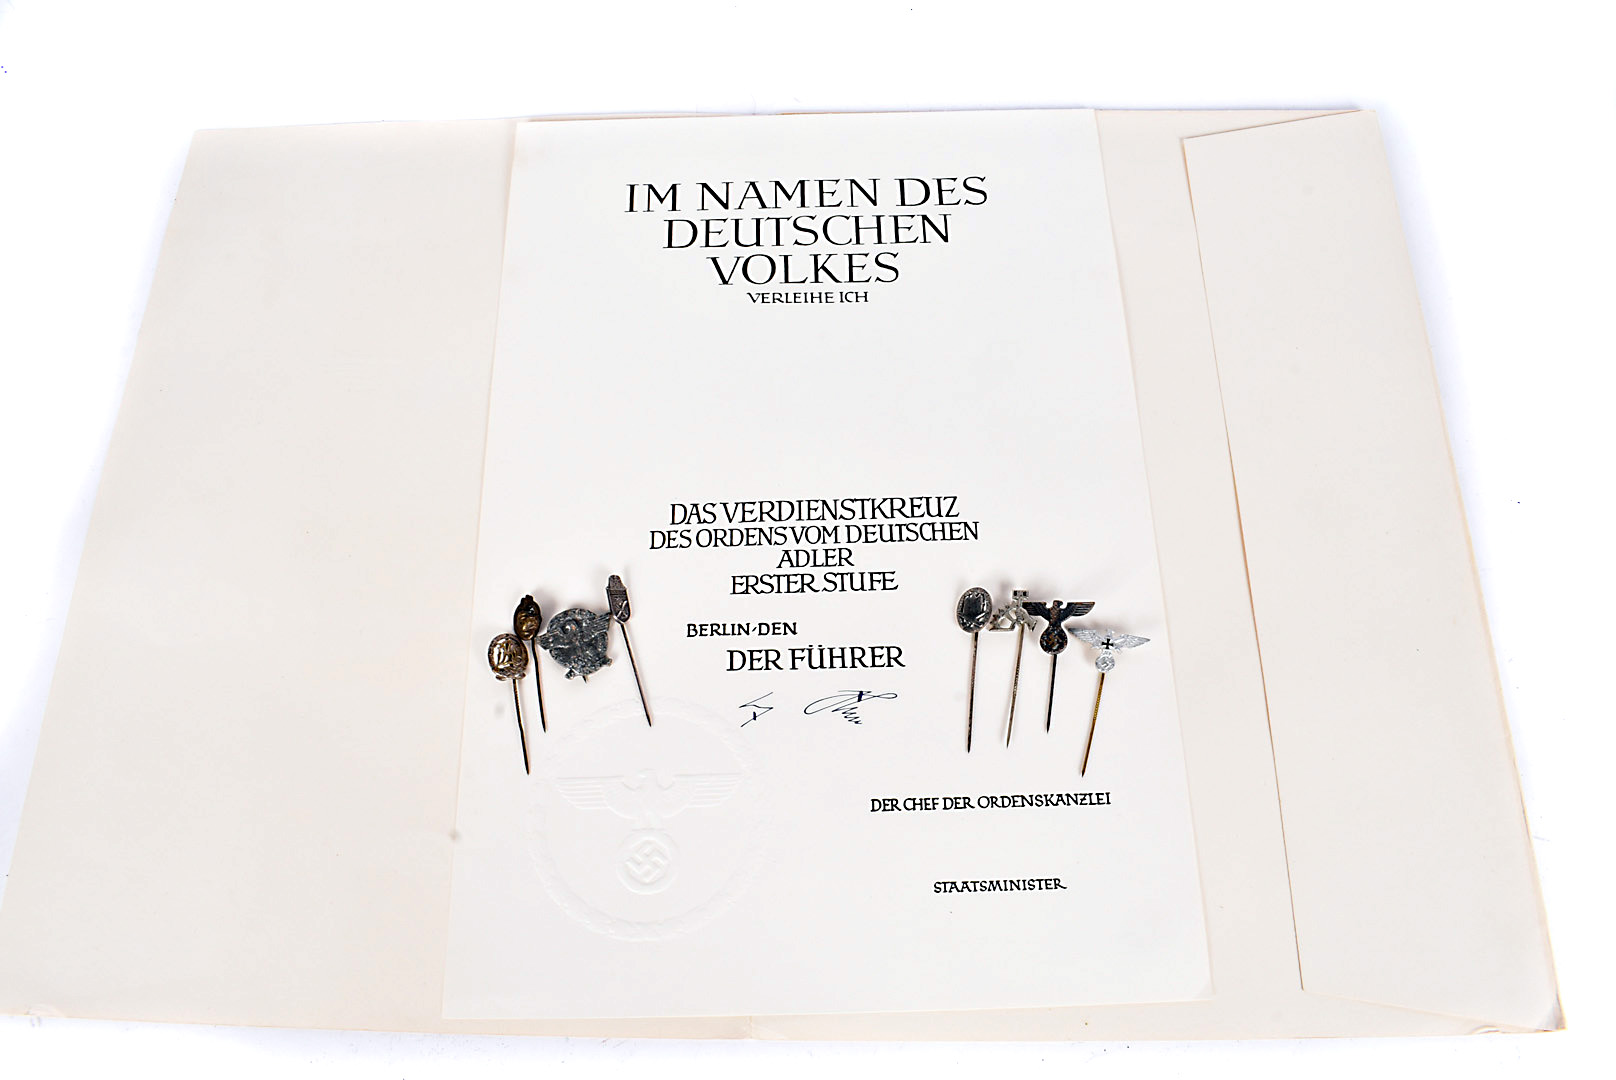 A reproduction Citation, having Third Reich blind stamp and signature, together with a small